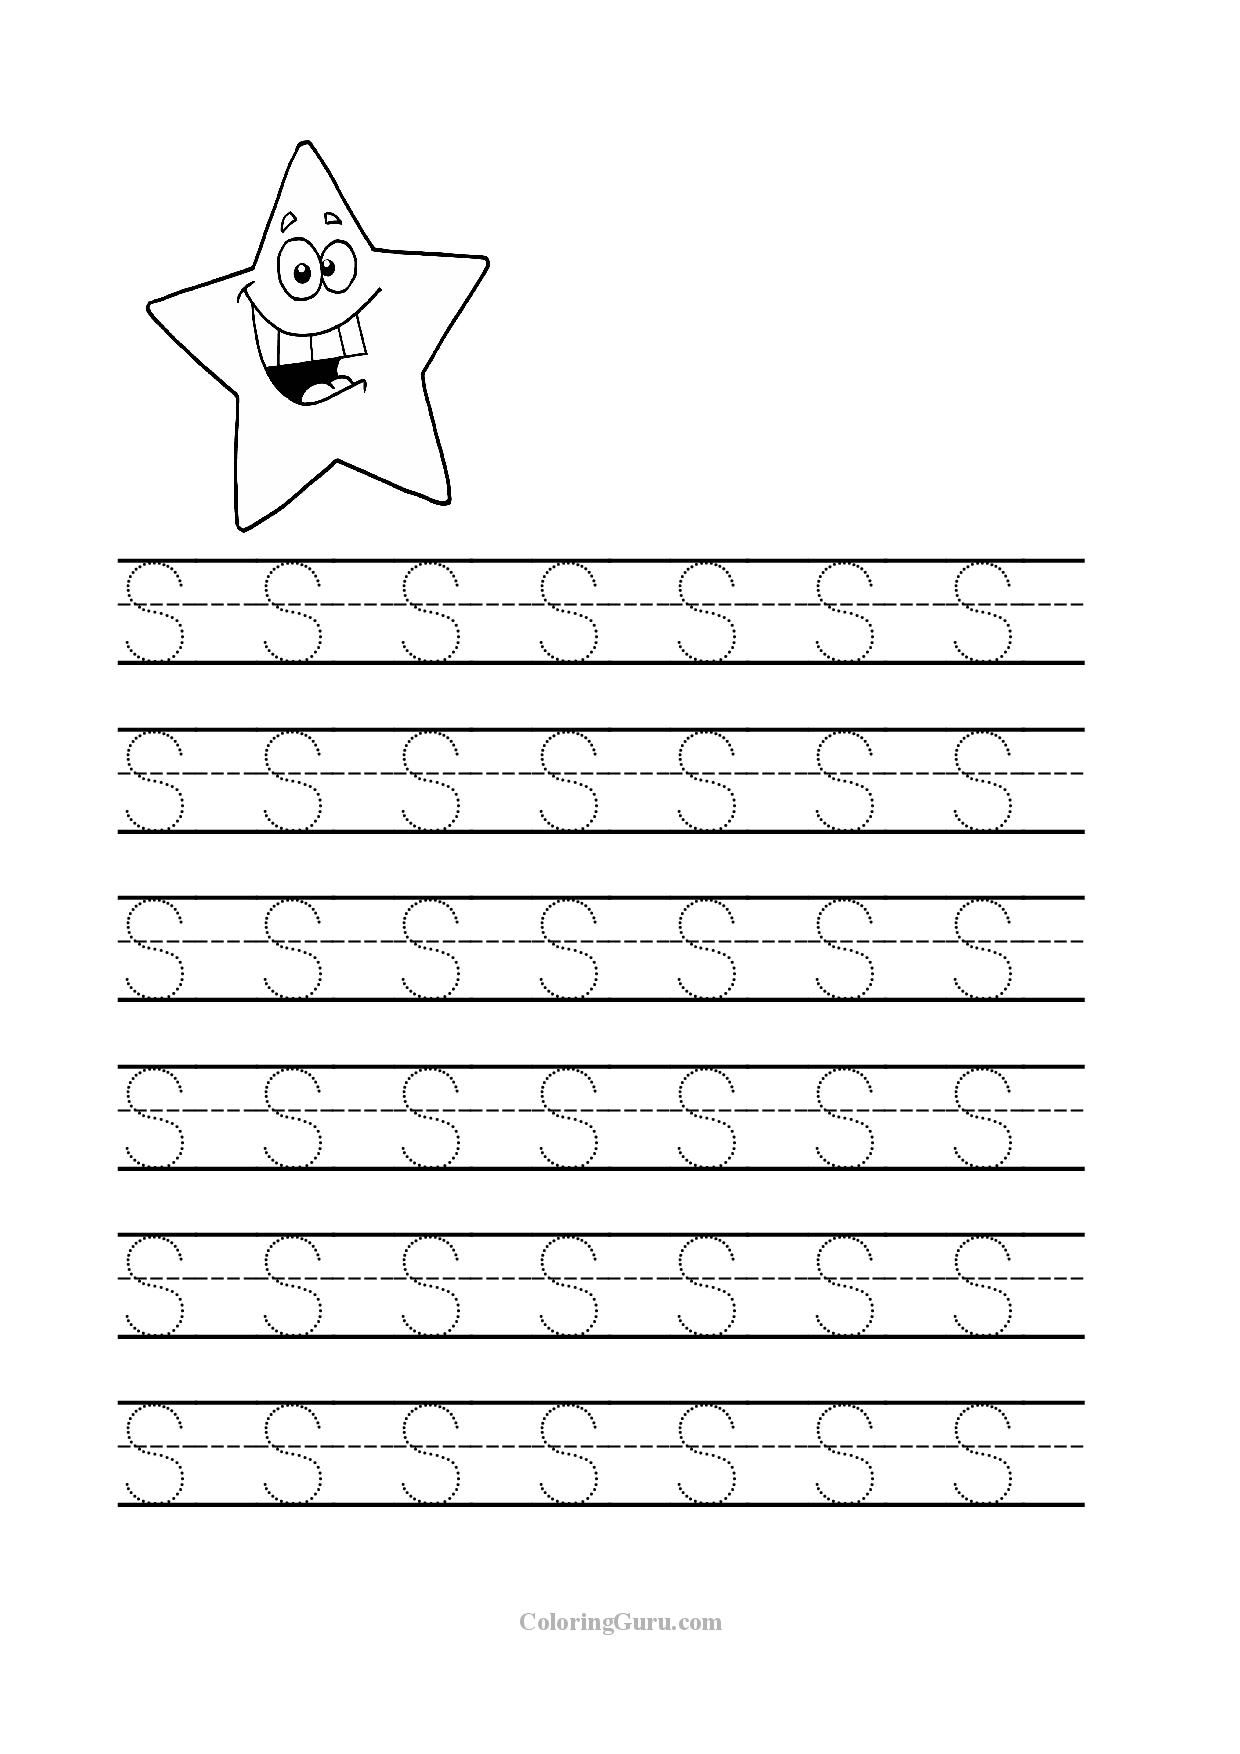 Free Printable Tracing Letter S Worksheets For Preschool intended for Tracing Letters With Pictures